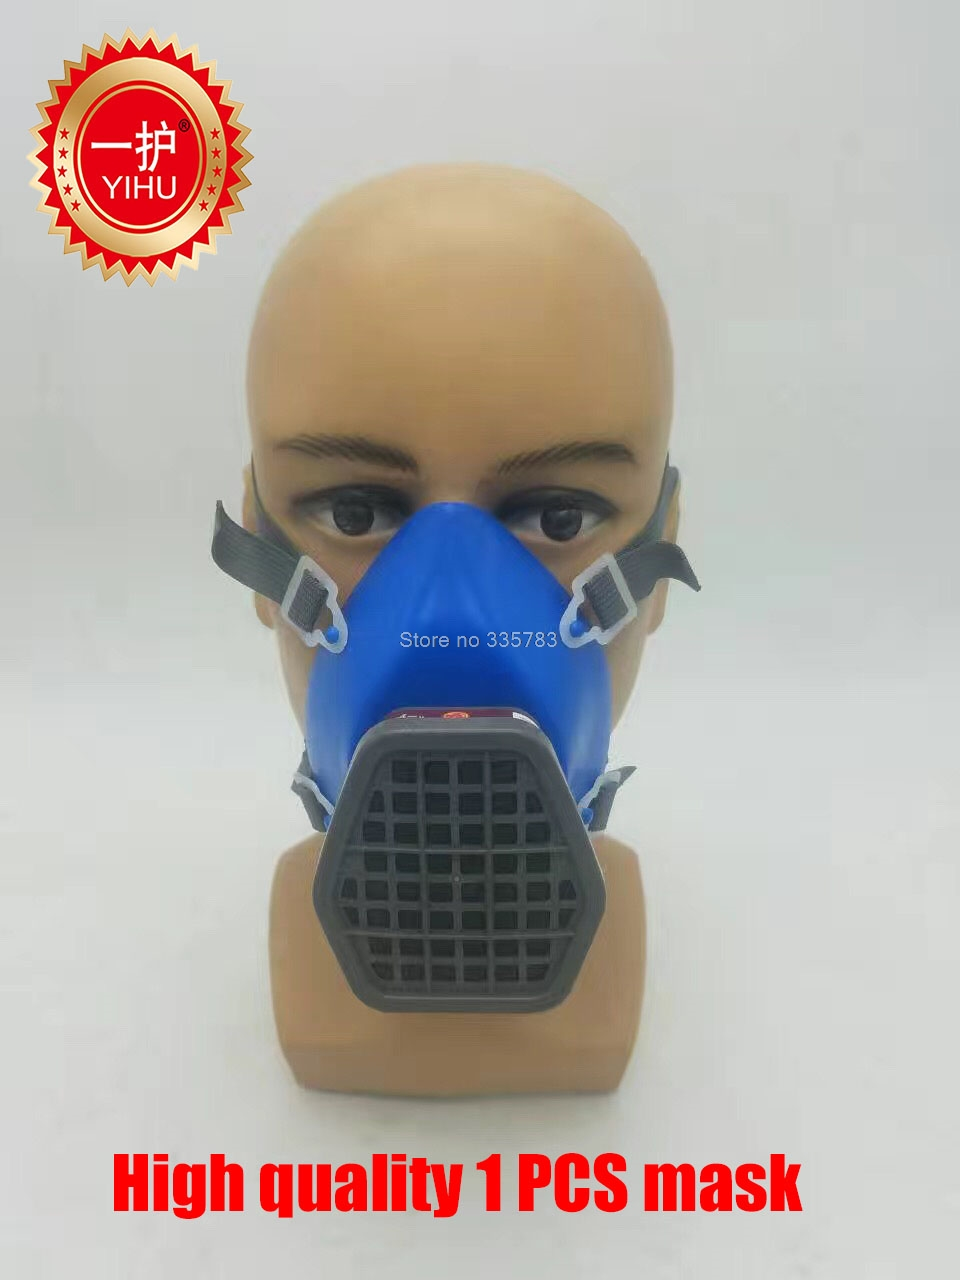 high quality respirator gas mask The newest water chestnut mask with filter Painting pesticide respirator face mask high quality airsoft mask pc the lens used for cs welding polishing dust the face protect mask splash proof material safety mask